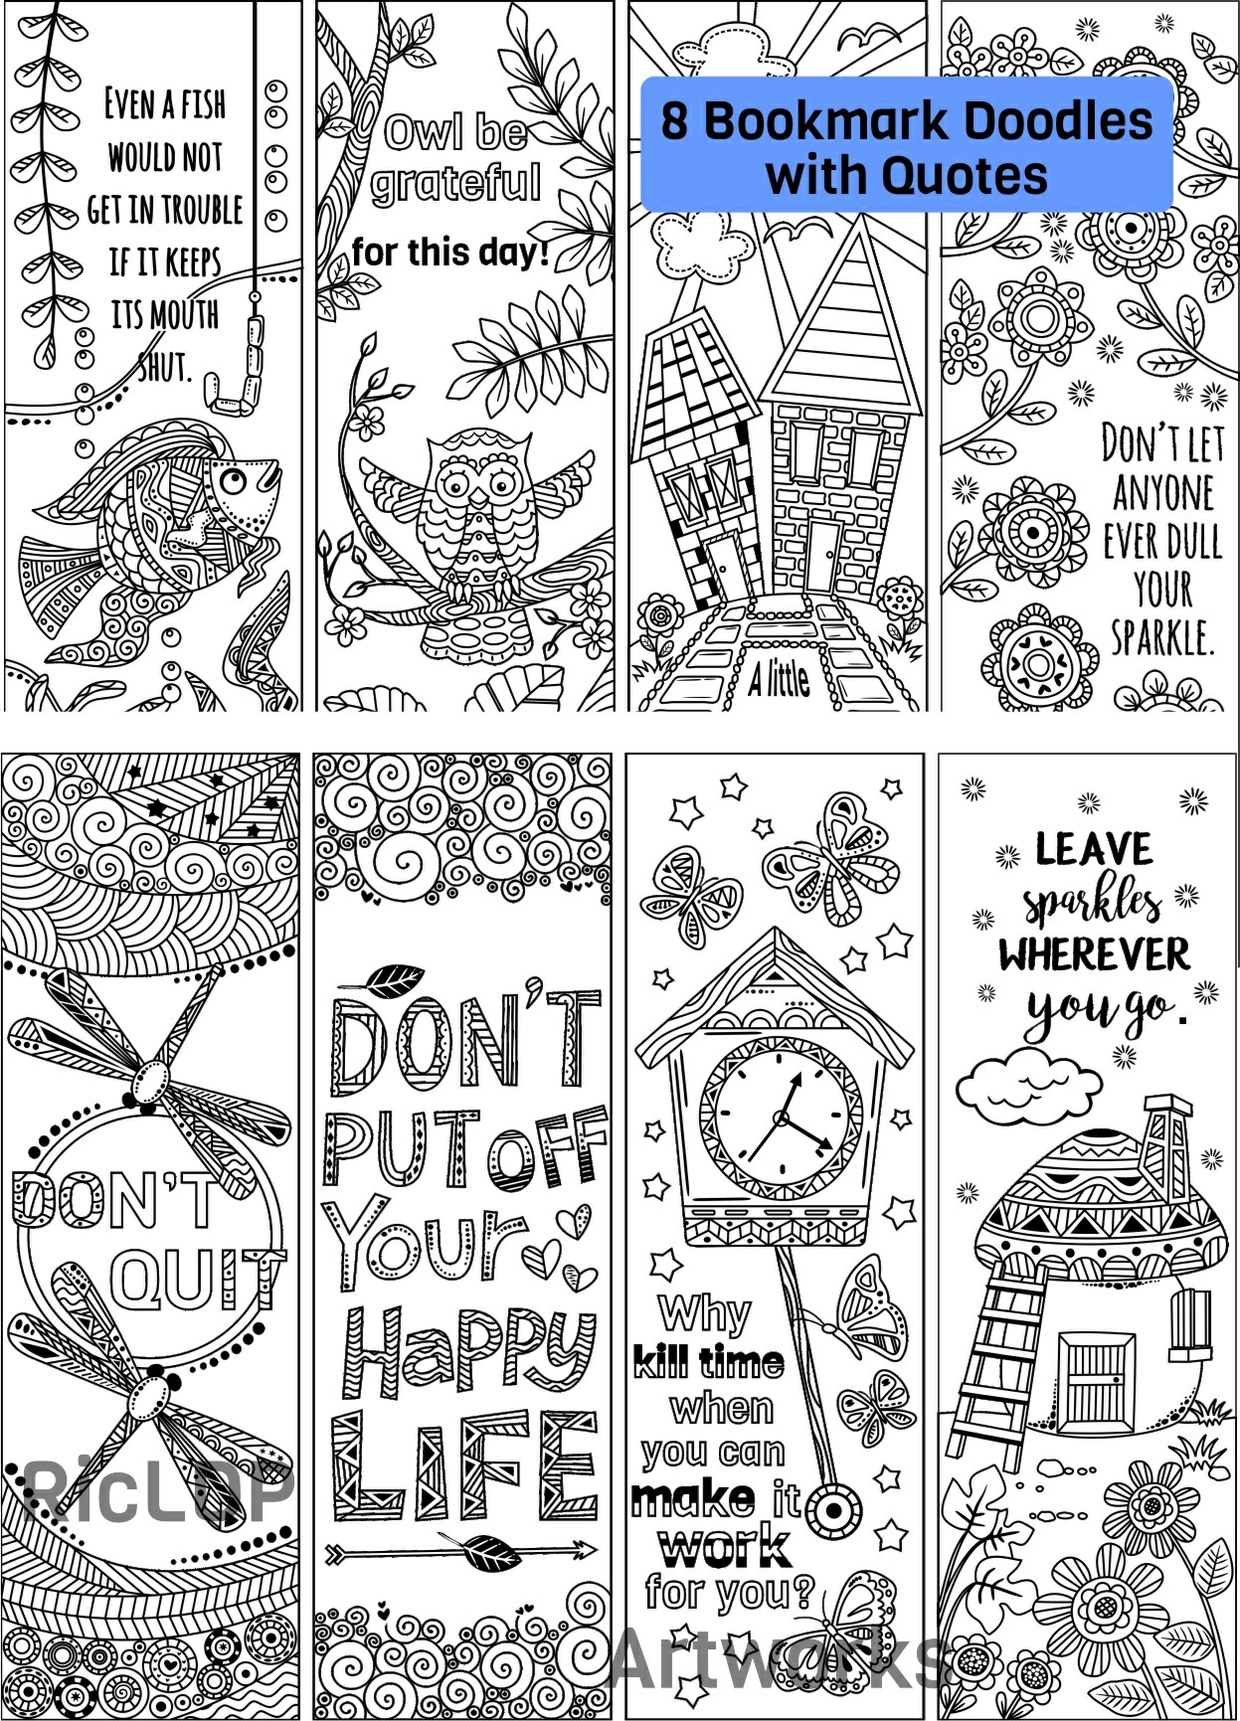 8 coloring bookmark doodles with quotes ricldp artworks sellfy com